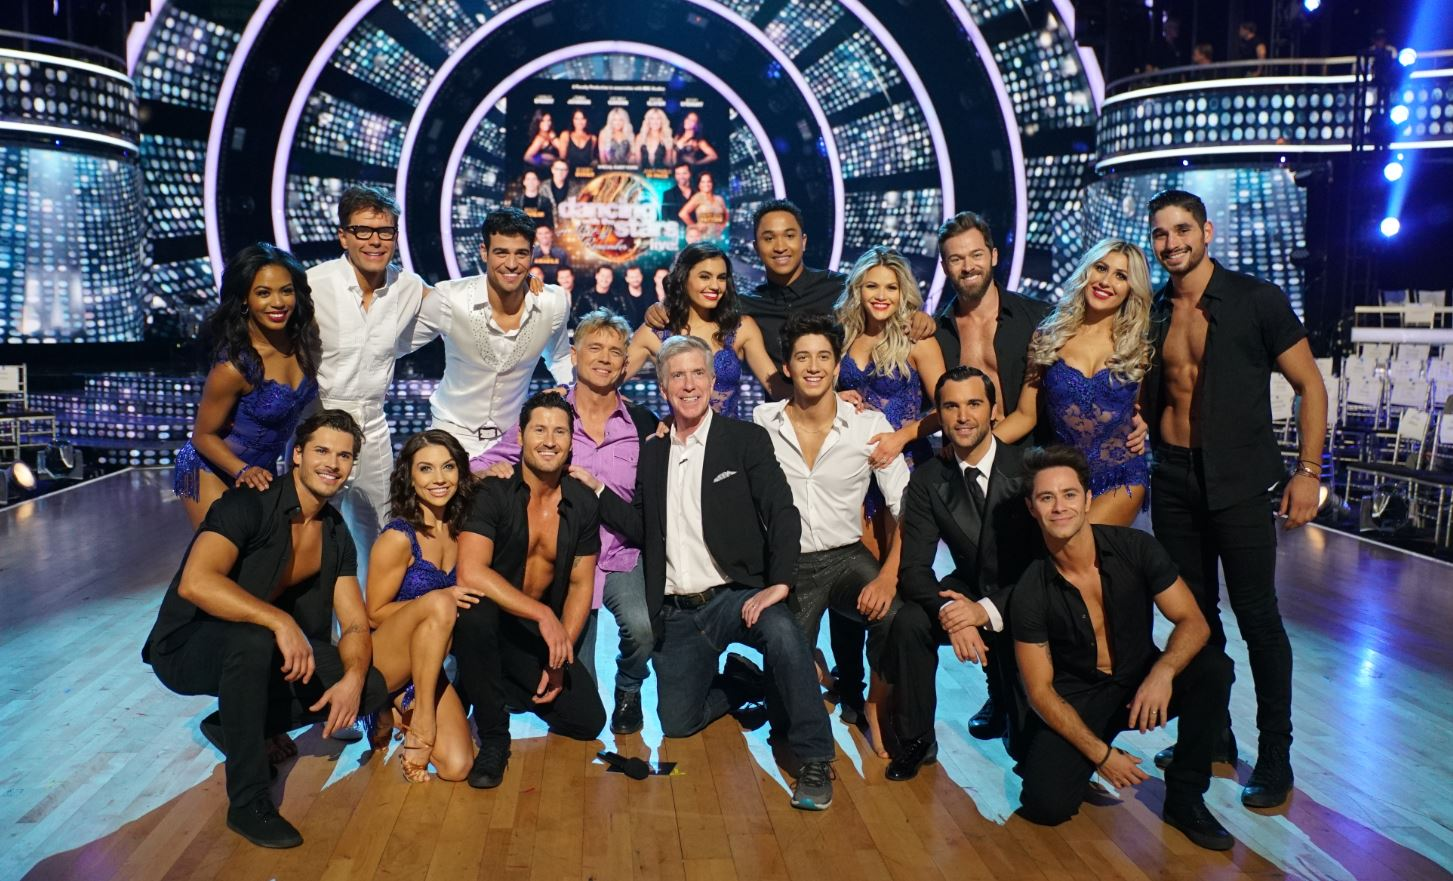 DWTS Celeb Group Photo 18 19 (002).JPG